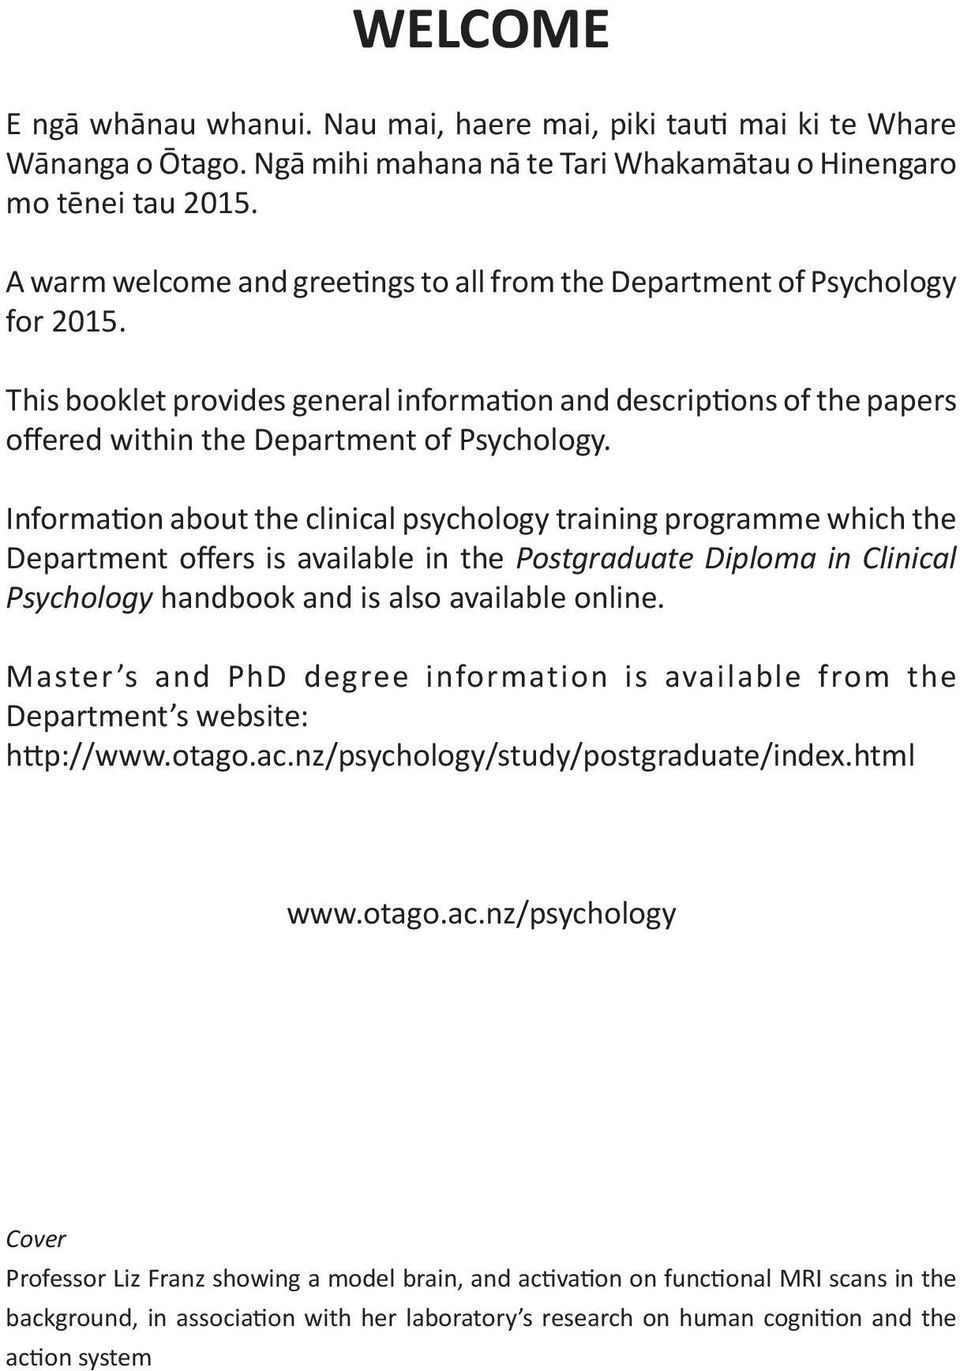 Information about the clinical psychology training programme which the Department offers is available in the Postgraduate Diploma in Clinical Psychology handbook and is also available online.